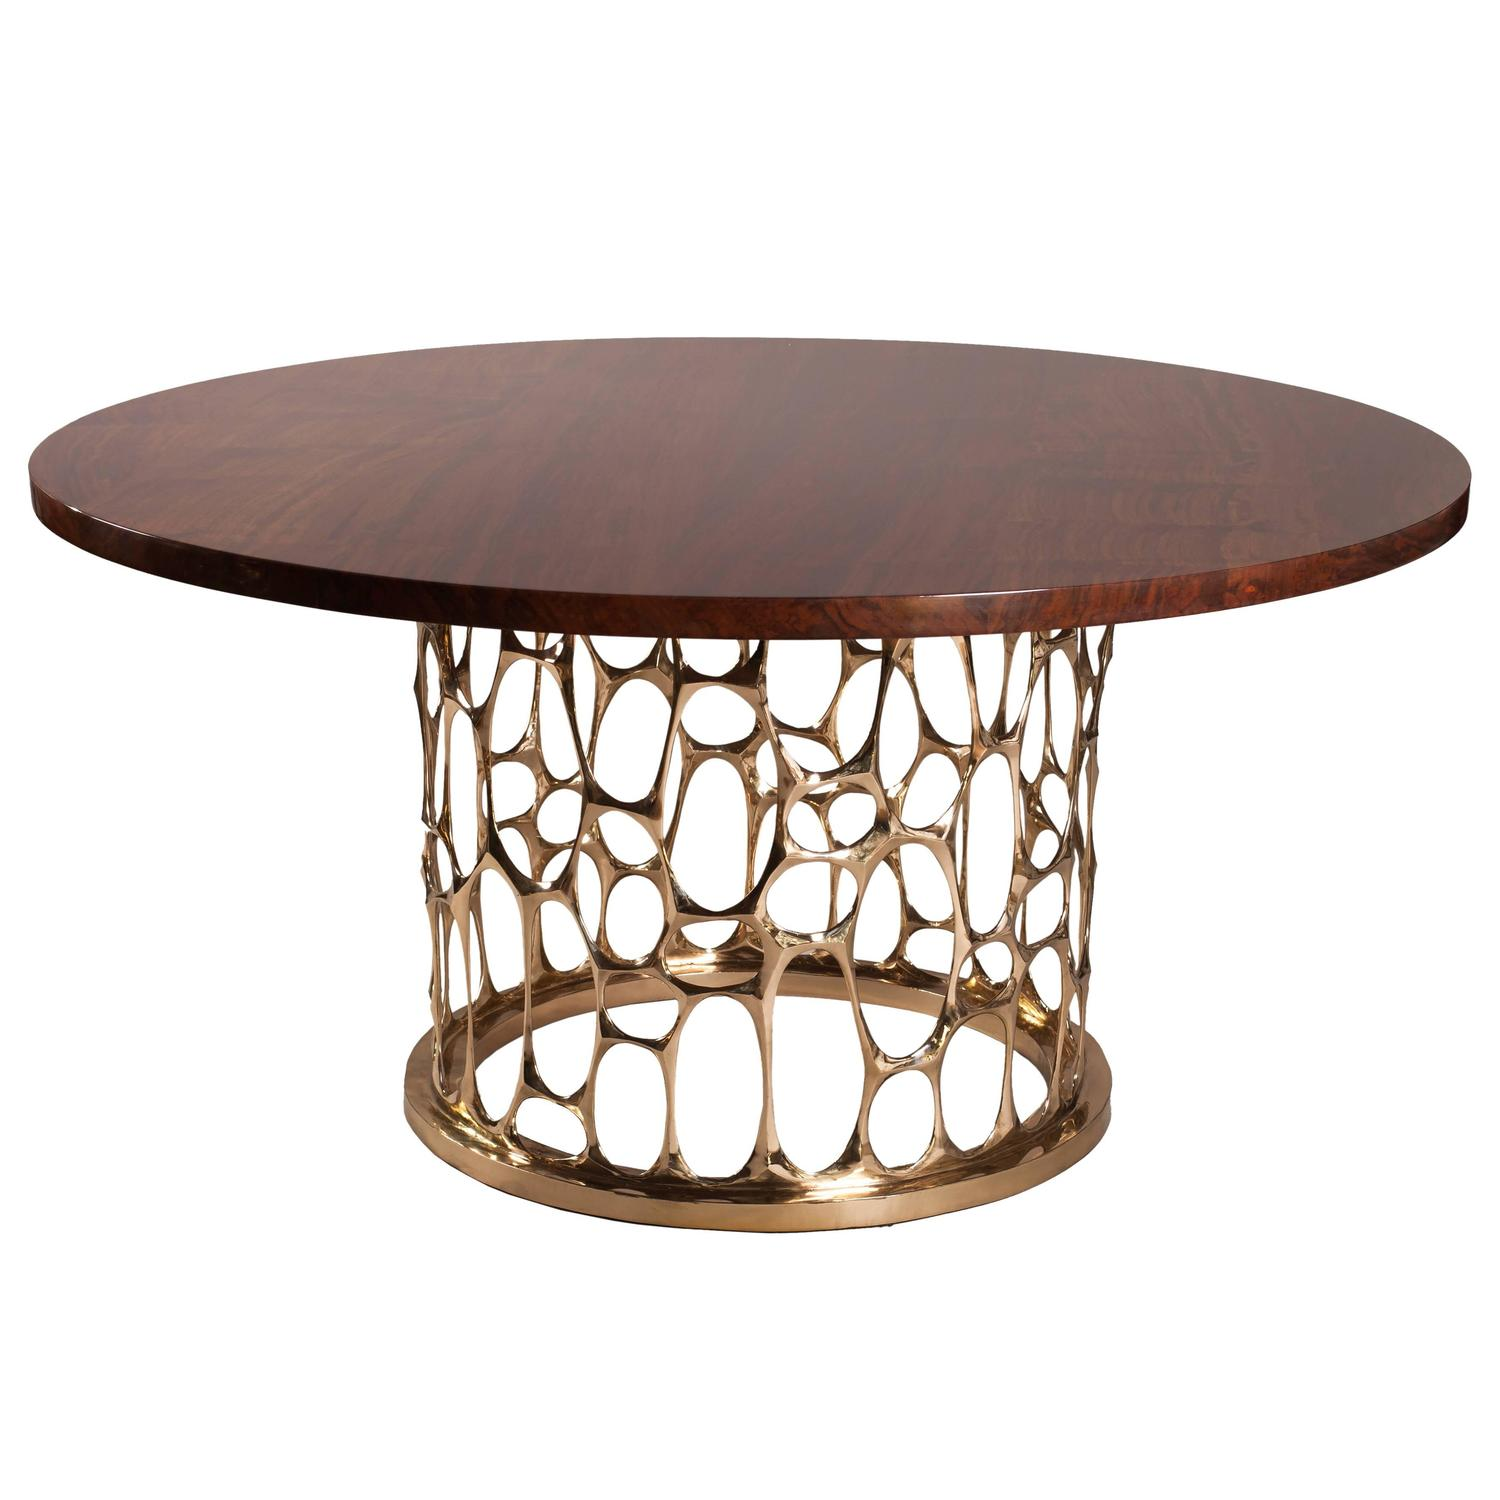 Quot homage to gaudi bronze dining table by nick king at stdibs